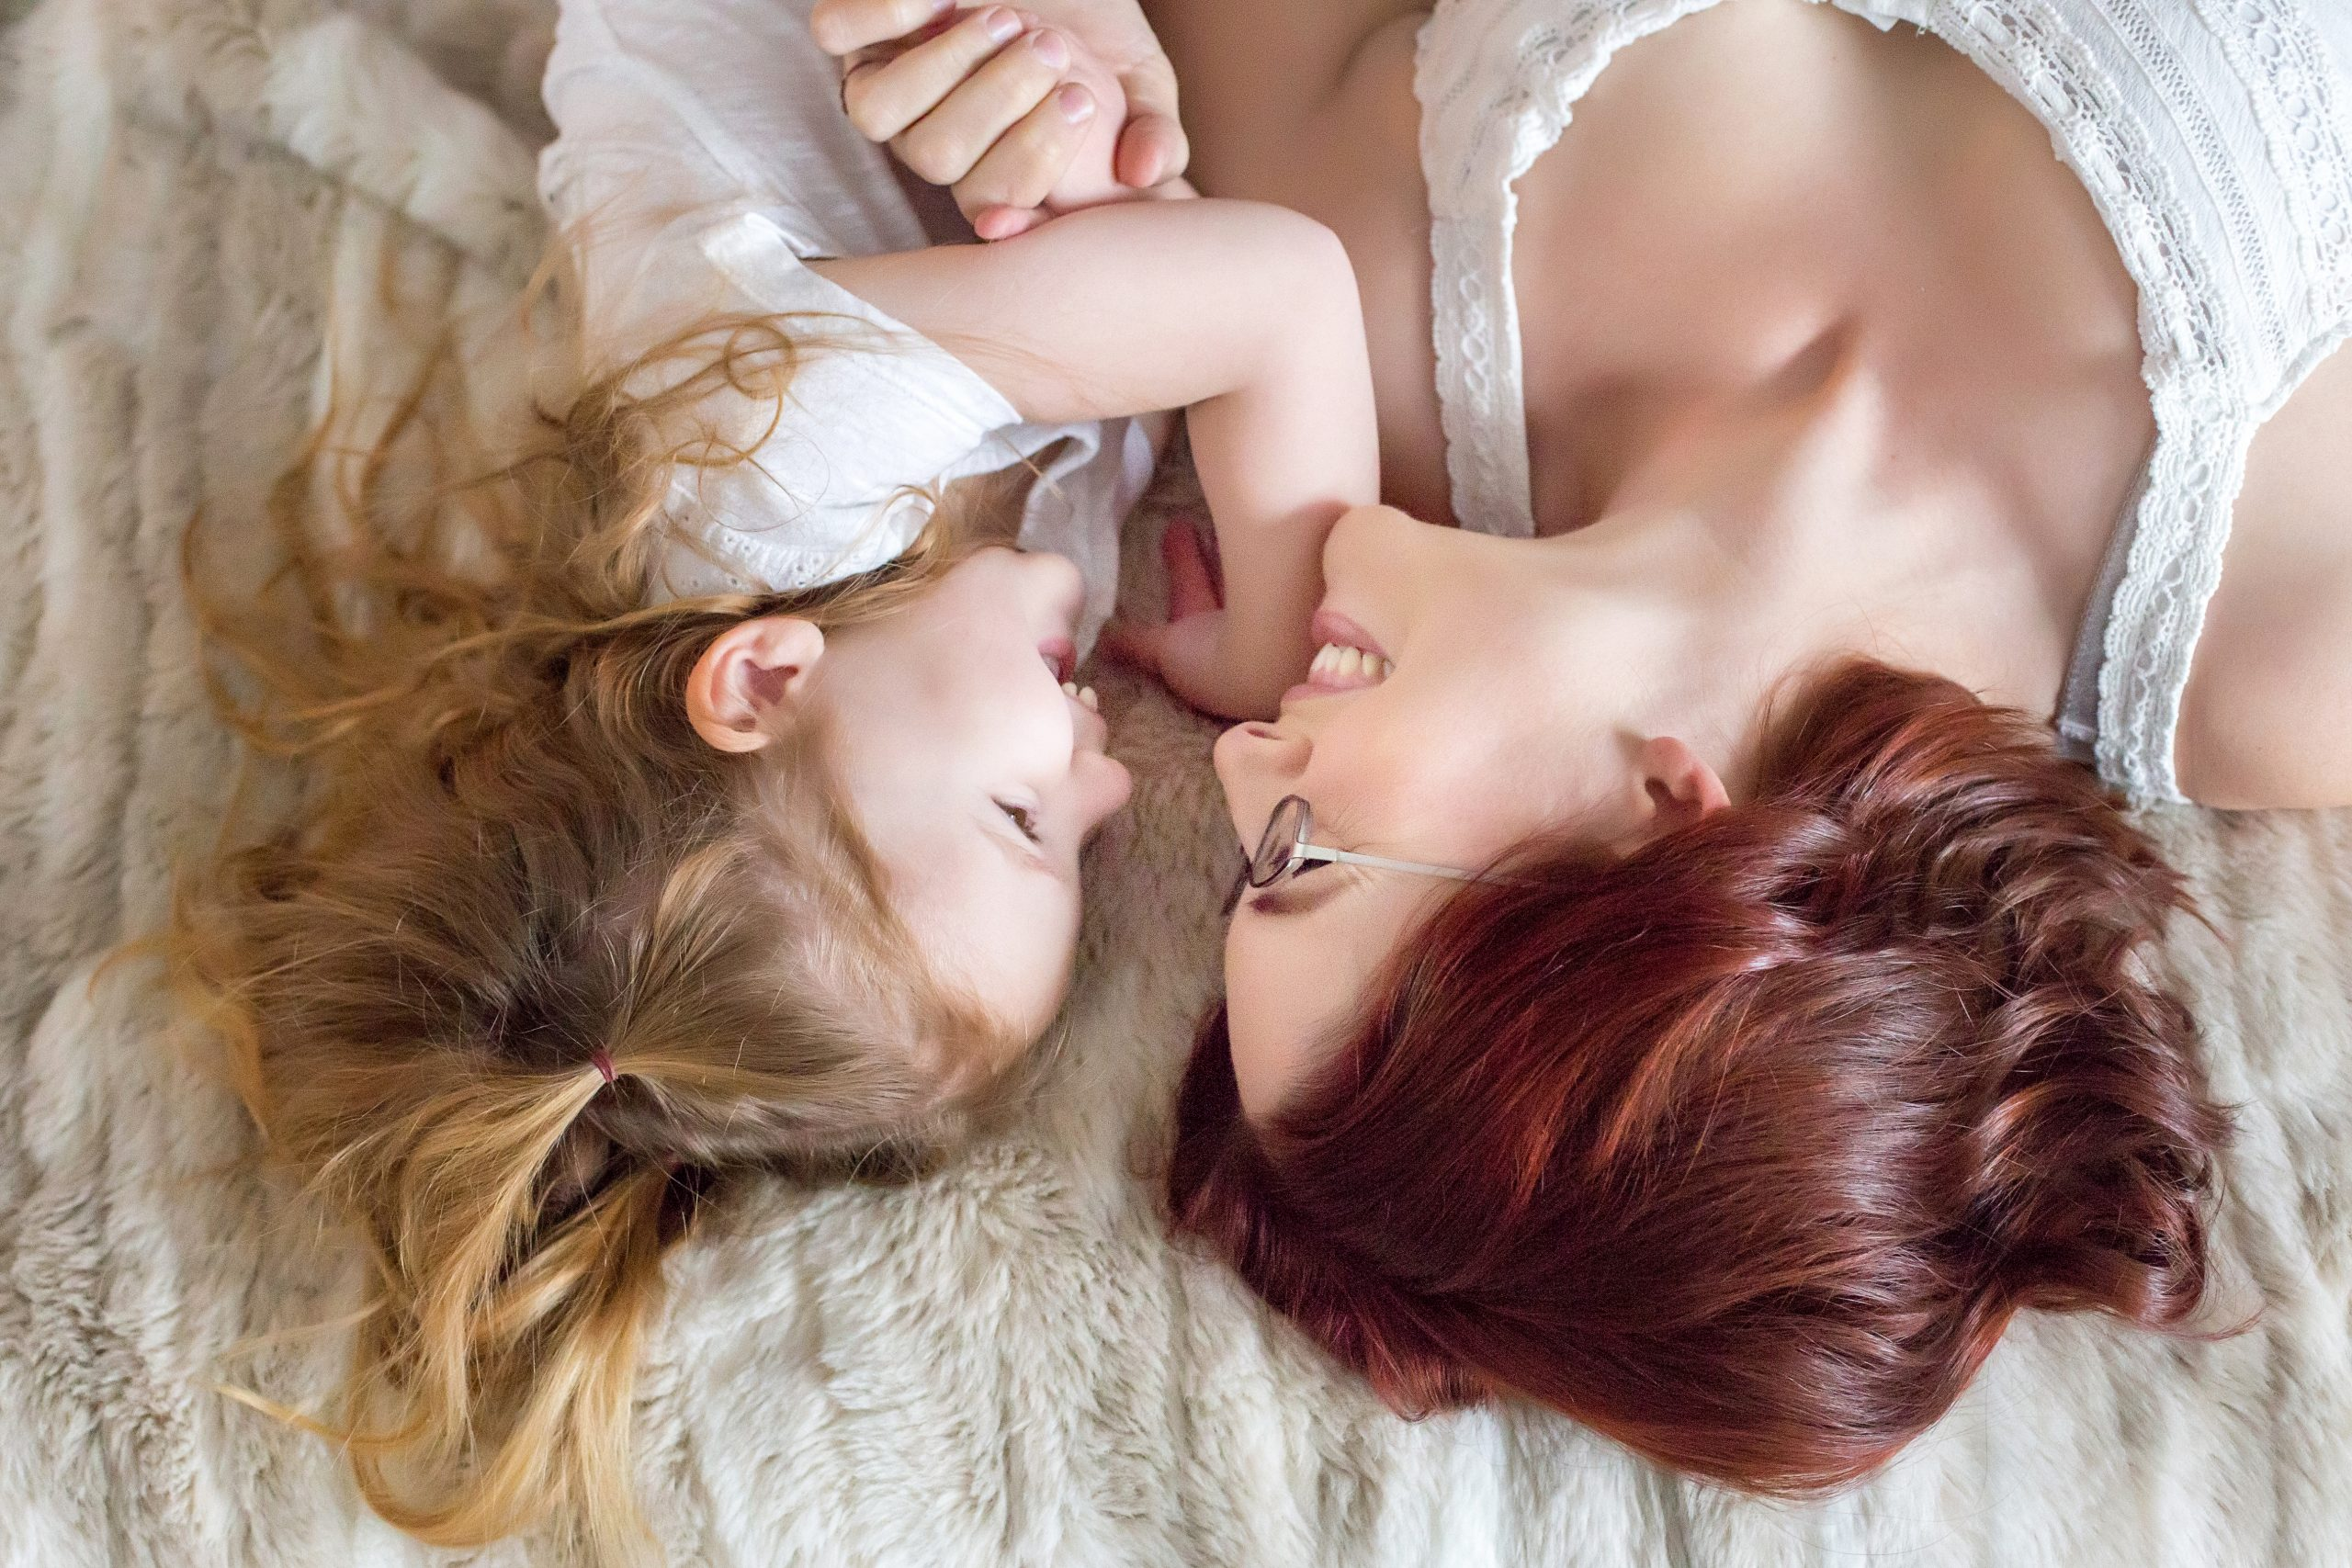 Teach your daughter what true beauty is. This mother-daughter image is of a young child, smiling at her mother while hugging. Photography by Rayleigh. For more info, please visit byRayleigh.com